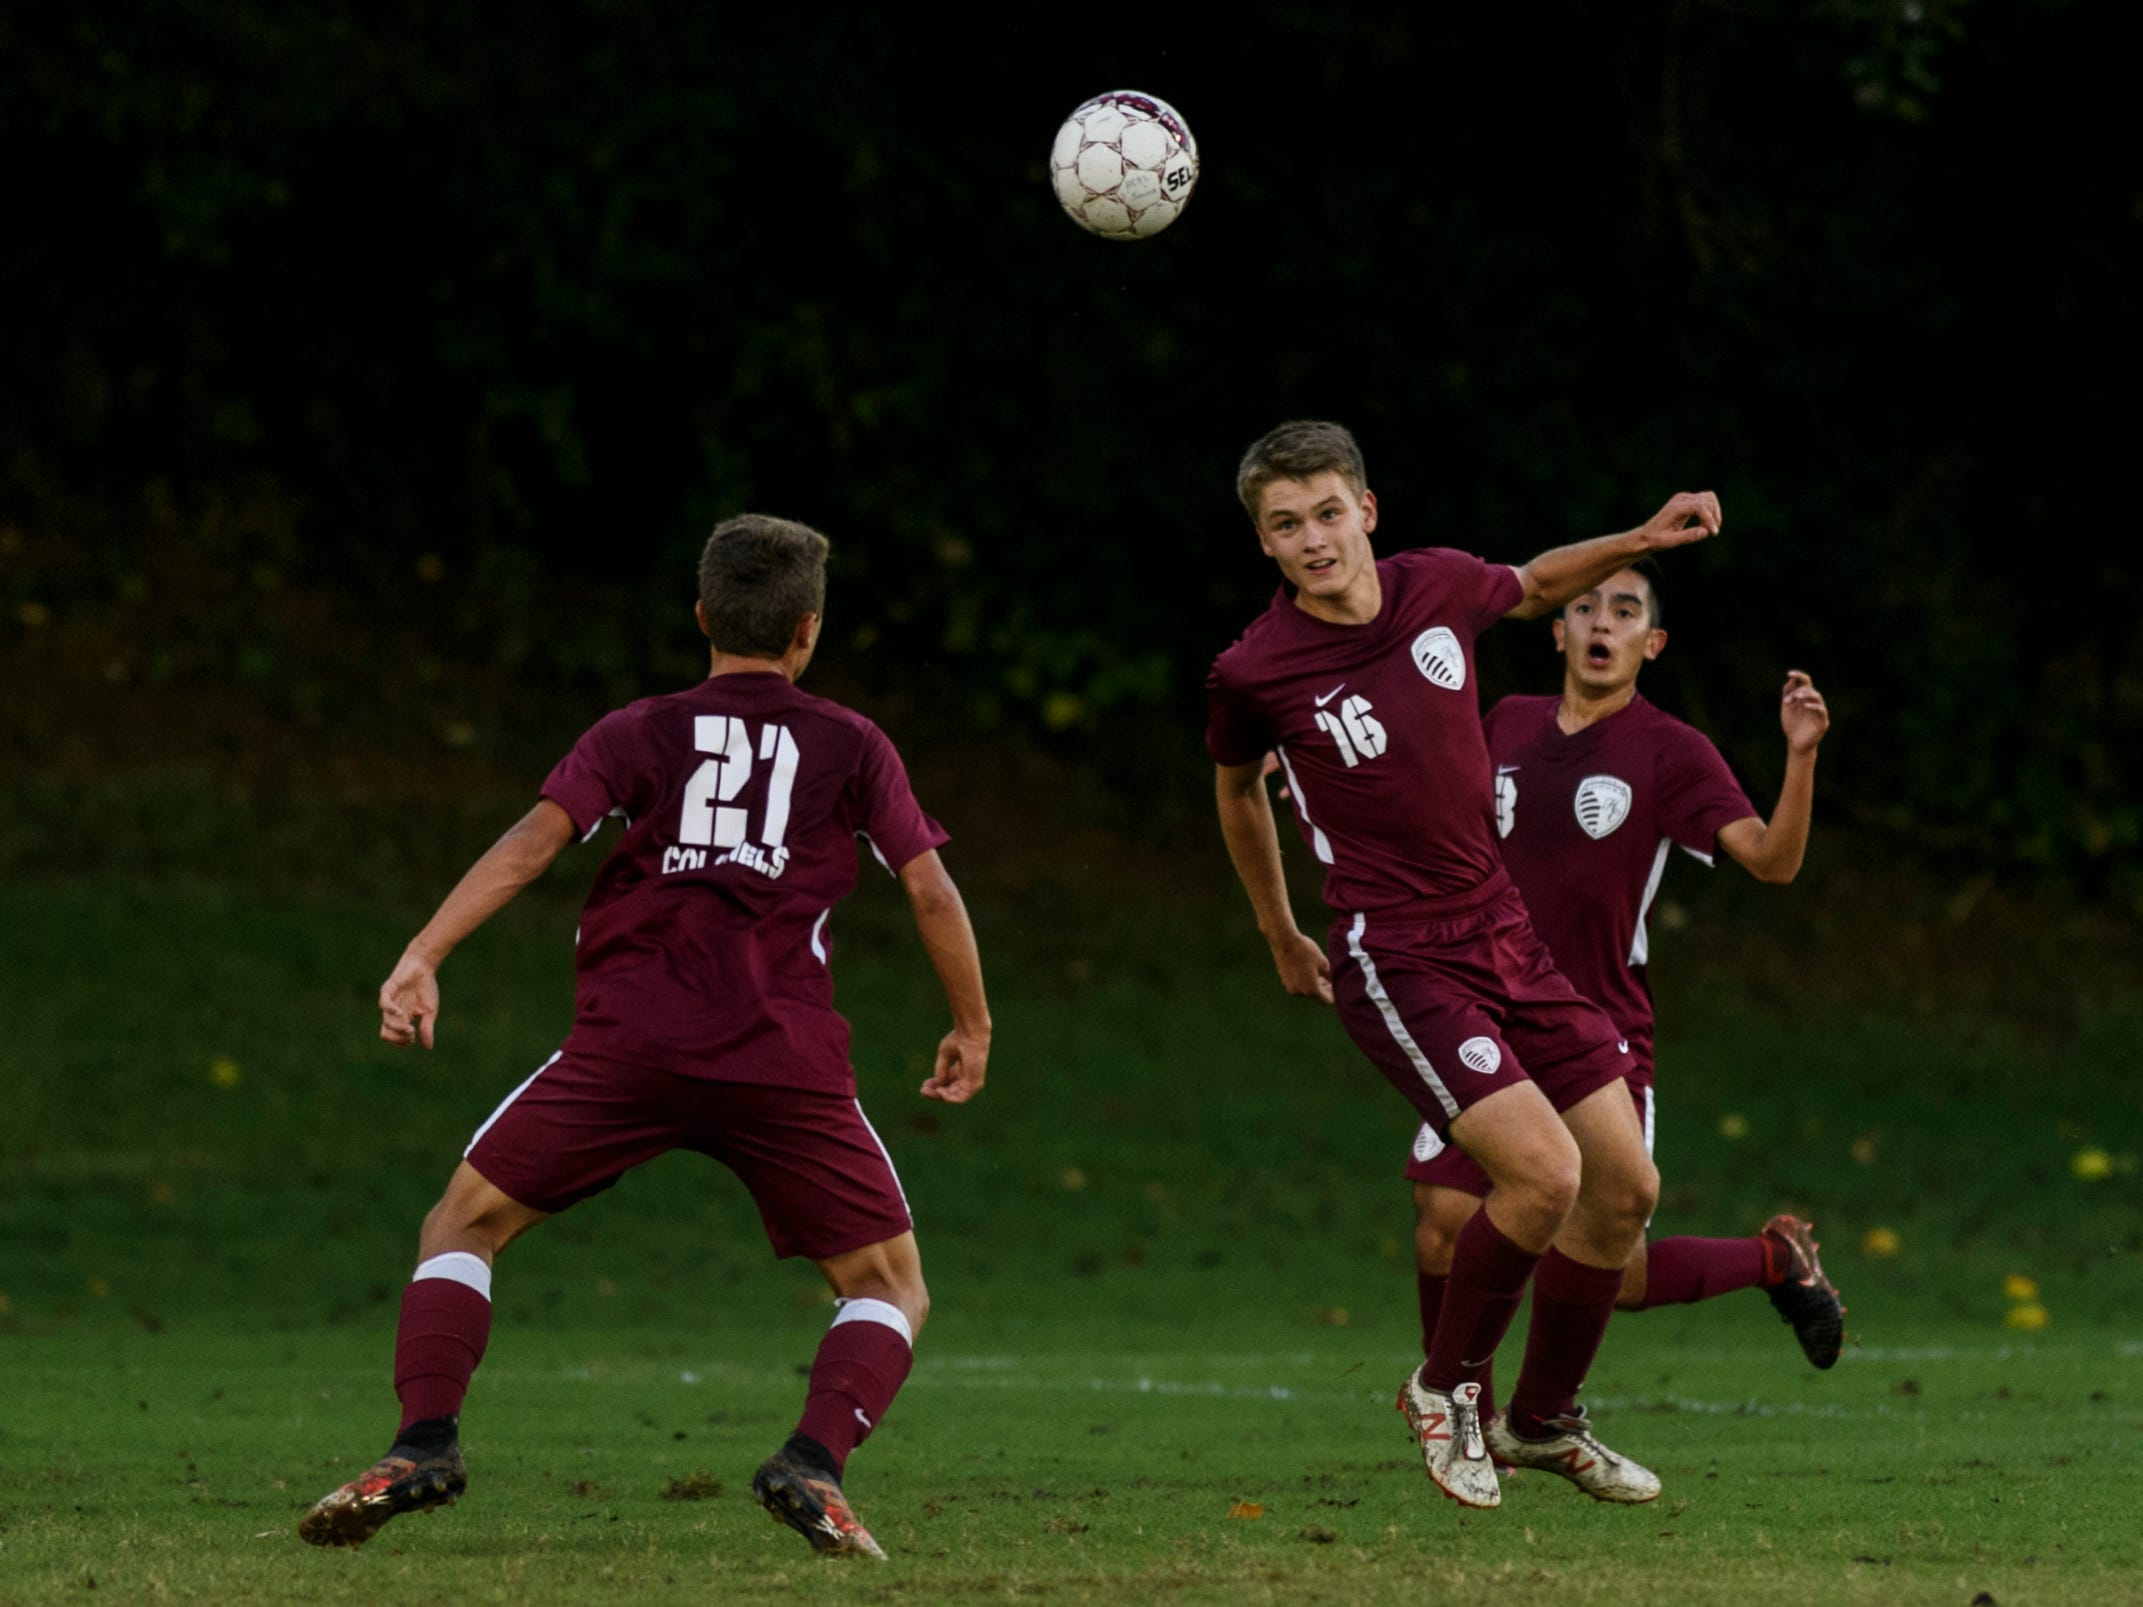 Henderson County's Lucas Butler (16) heads the ball to teammate Ashton Todd (21) during the match against the Daviess County Panthers at Colonel Field in Henderson, Ky., Thursday, Sept. 27, 2018. The Panthers defeated the Colonels 5-3.